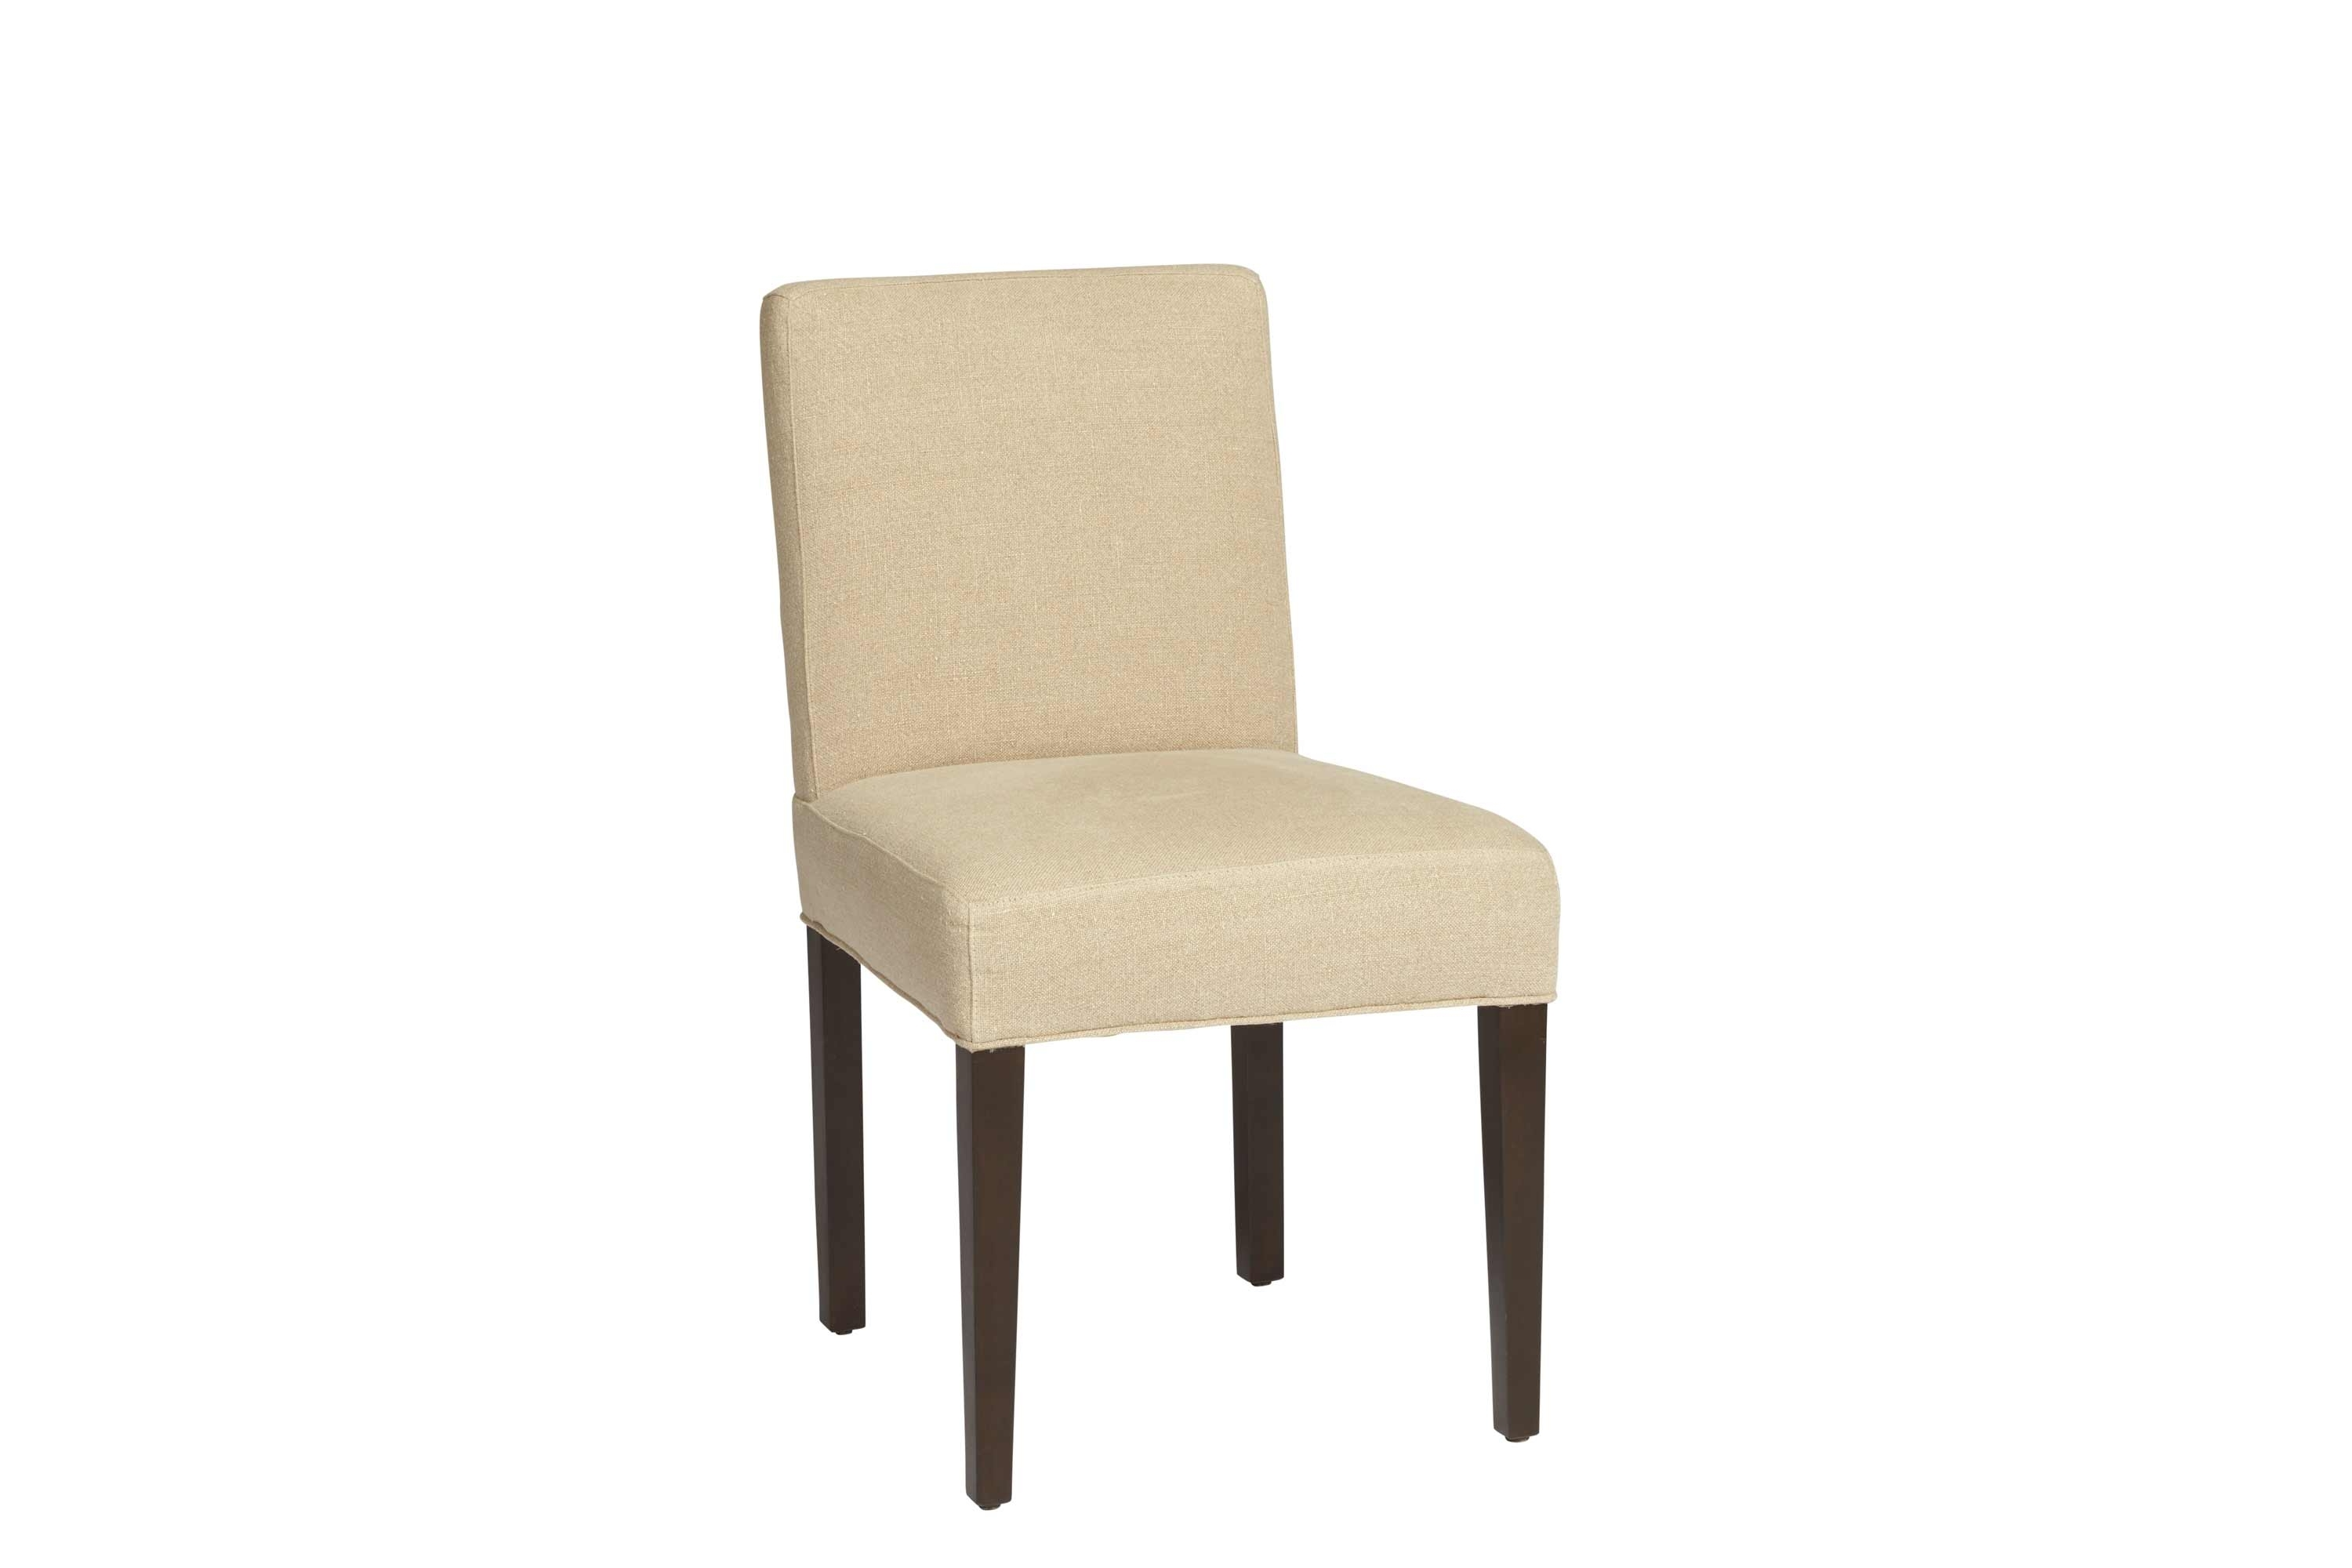 2018 Dining Chairs Within Armless Oatmeal Dining Chairs (Gallery 1 of 20)